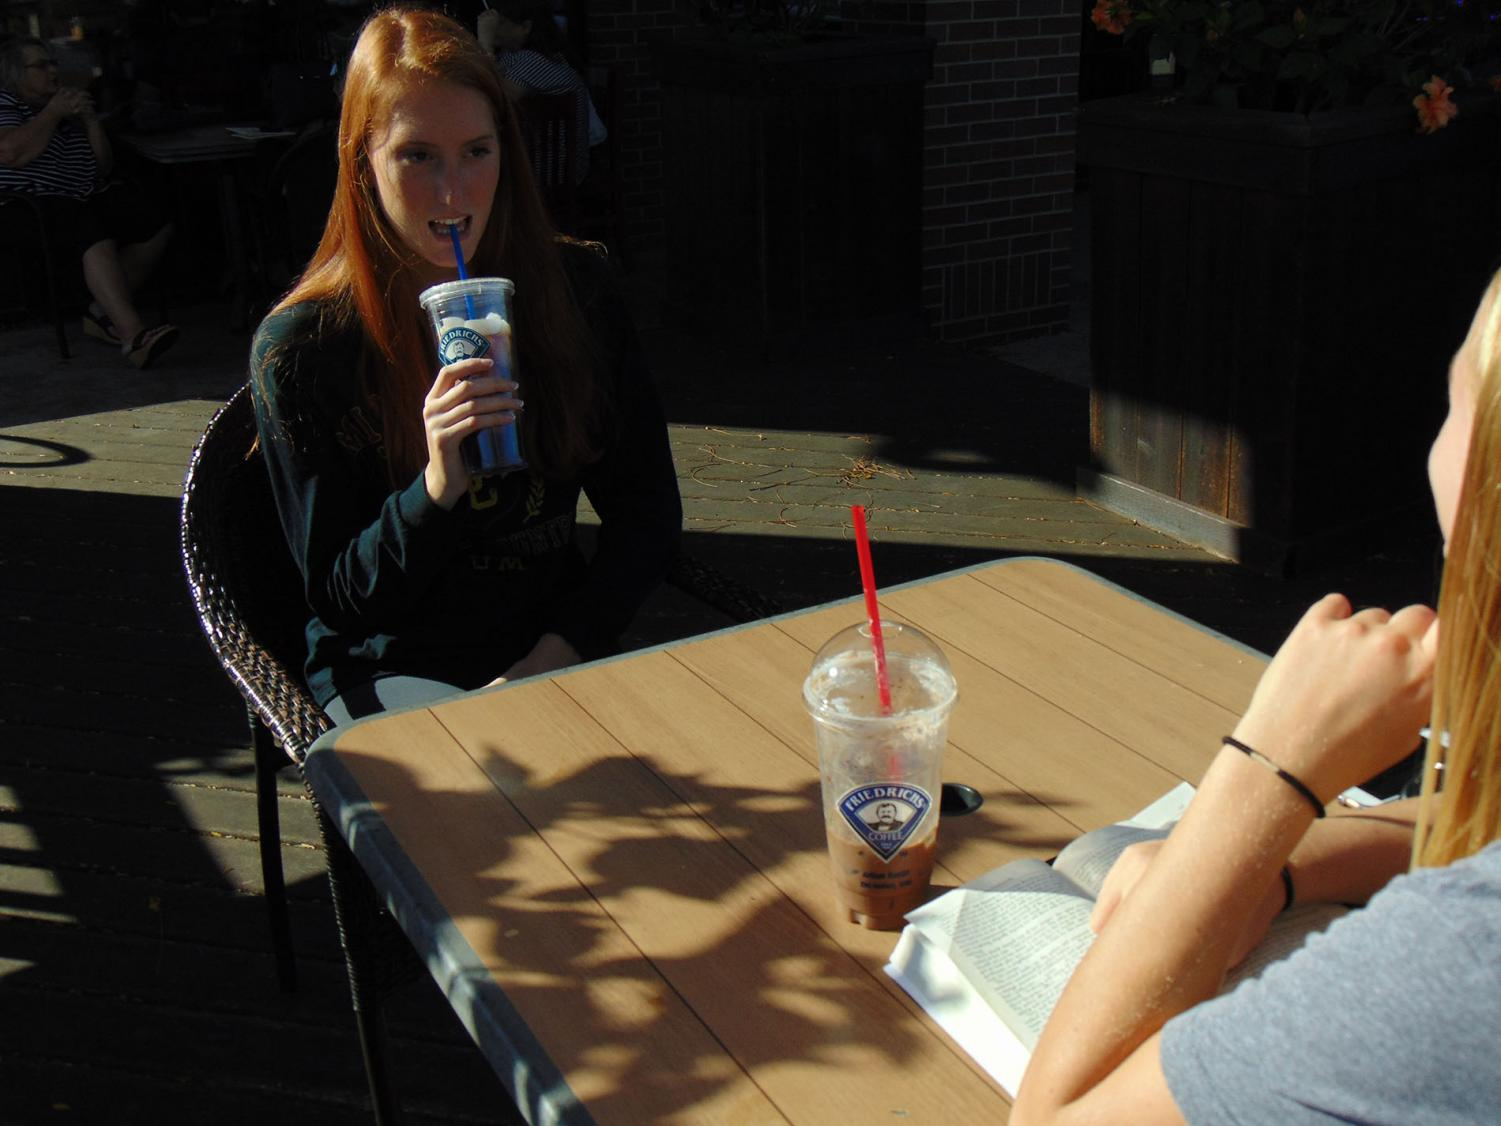 Sloane Wilhelm, '19, Macy Thompson, '19, have their usual coffee at Friedrich's Coffee in Urbandale. This is their go-to coffee shop because of the free wifi and cozy environment.